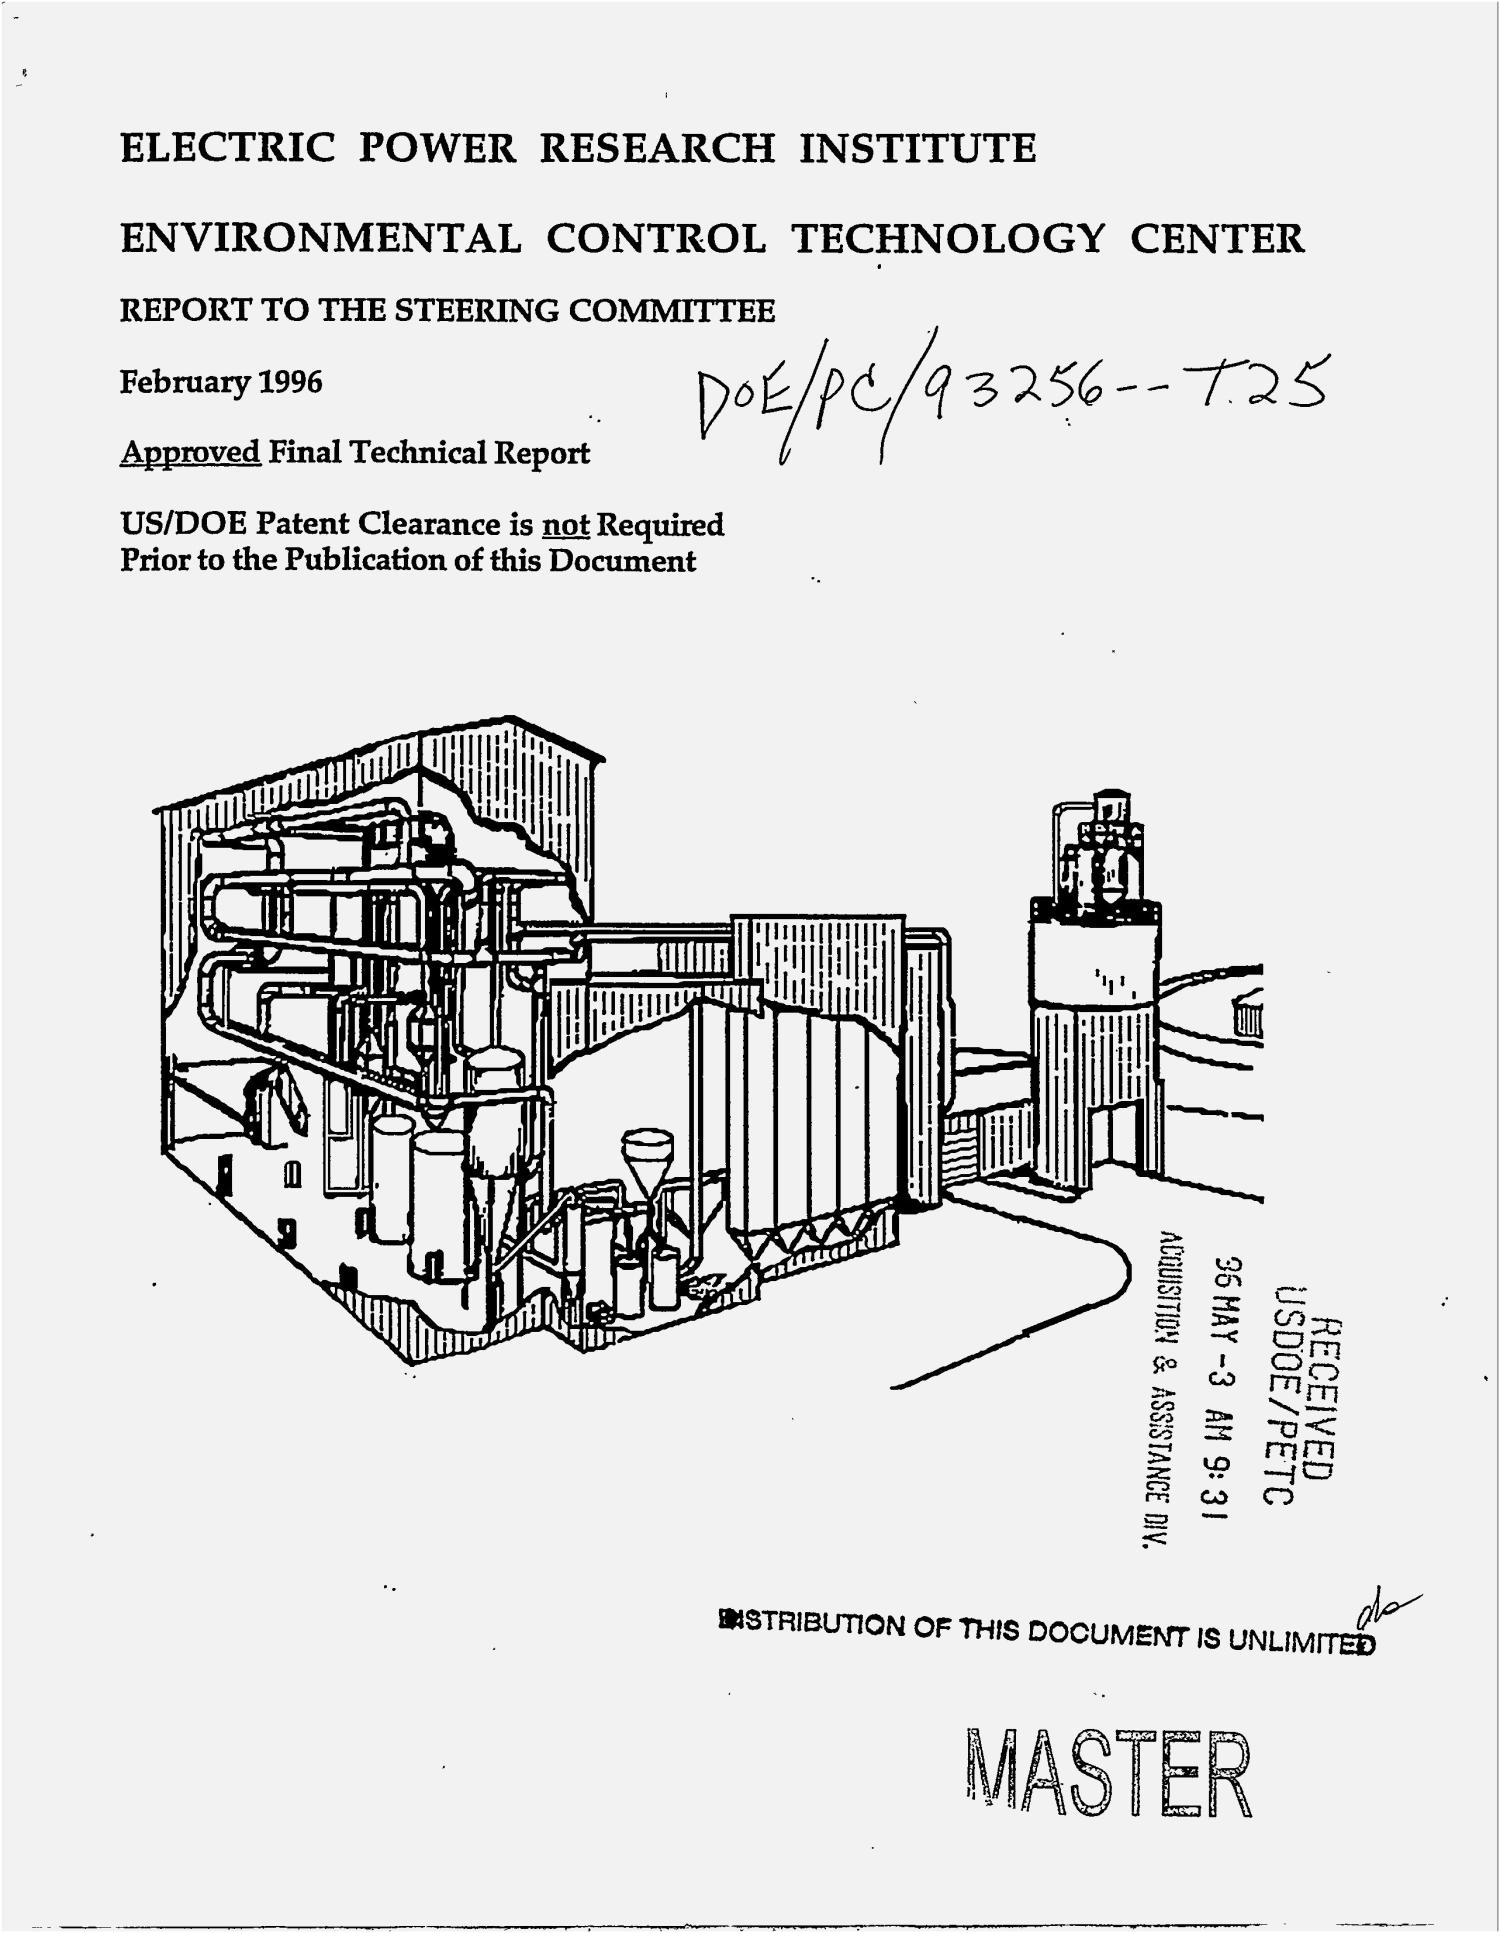 Electric Power Research Institute: Environmental Control Technology Center. Report to the Steering Committee, February 1996. Final technical report                                                                                                      [Sequence #]: 1 of 80